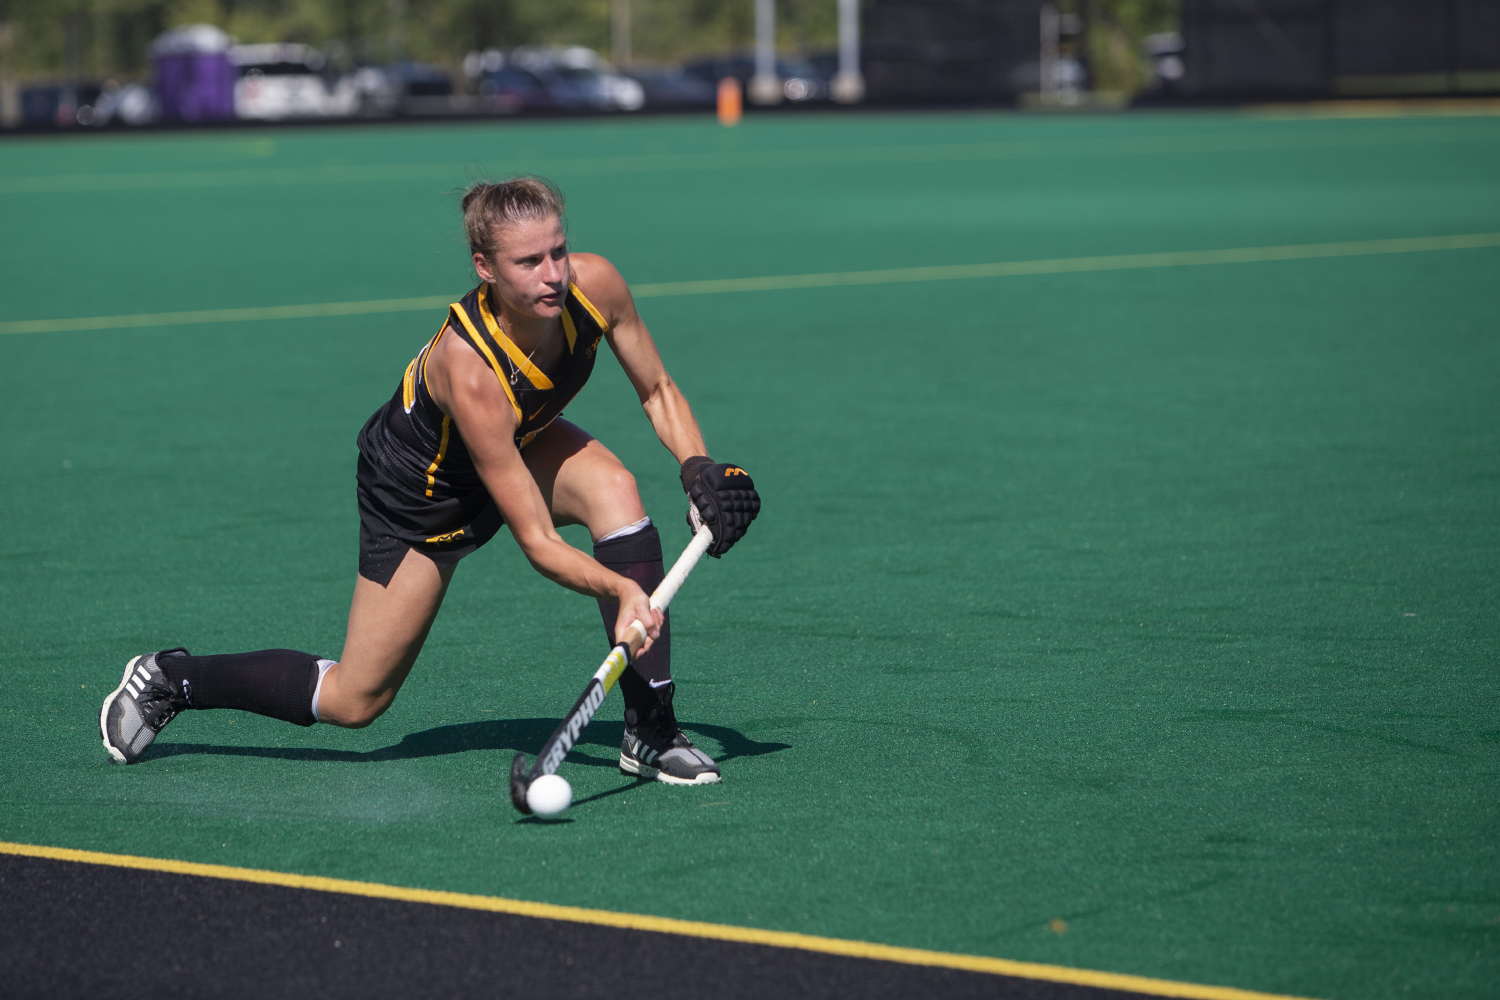 Iowa+midfielder+Esme+Gibson+passes+the+ball+during+a+field+hockey+game+between+Iowa+and+Central+Michigan+at+Grant+Field+on+Friday%2C+September+6%2C+2019.+The+Hawkeyes+defeated+the+Chippewas%2C+11-0.